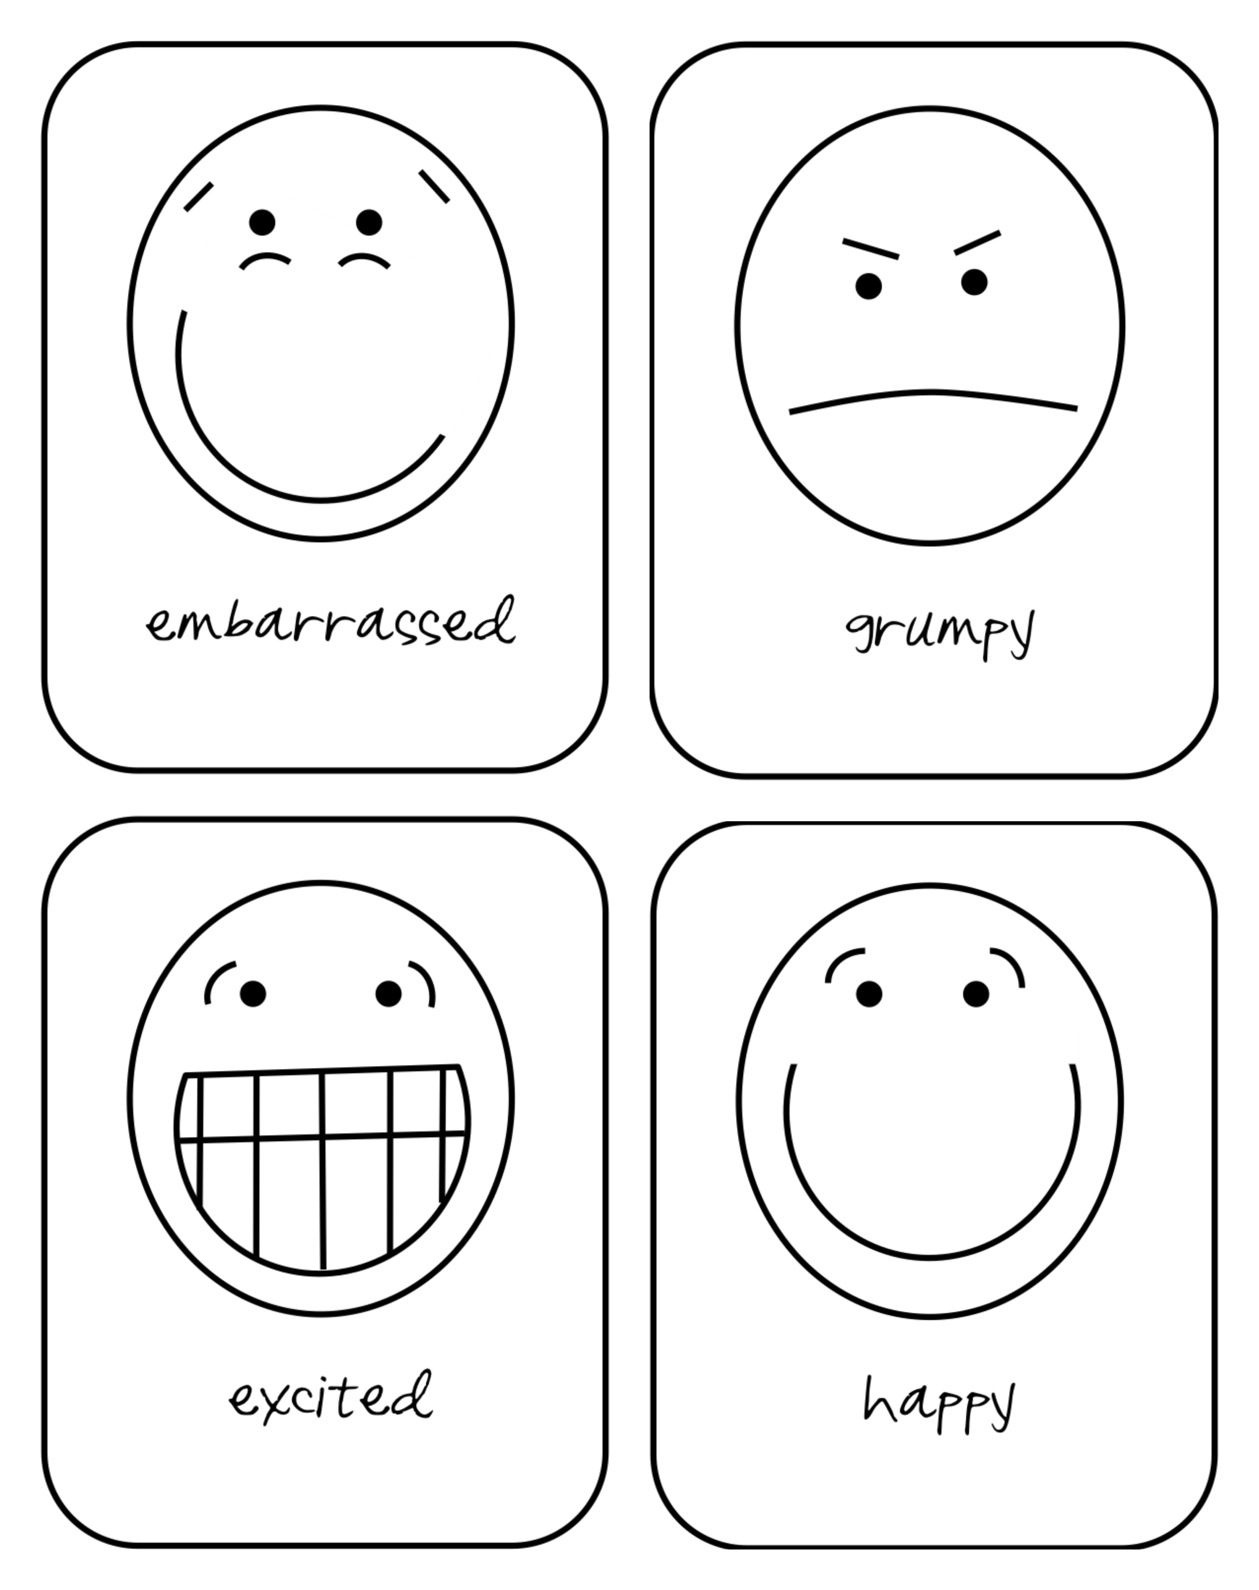 Free Printable Emotion Flash Cards For Your Toddler   Hopes And - Free Printable Pictures Of Emotions